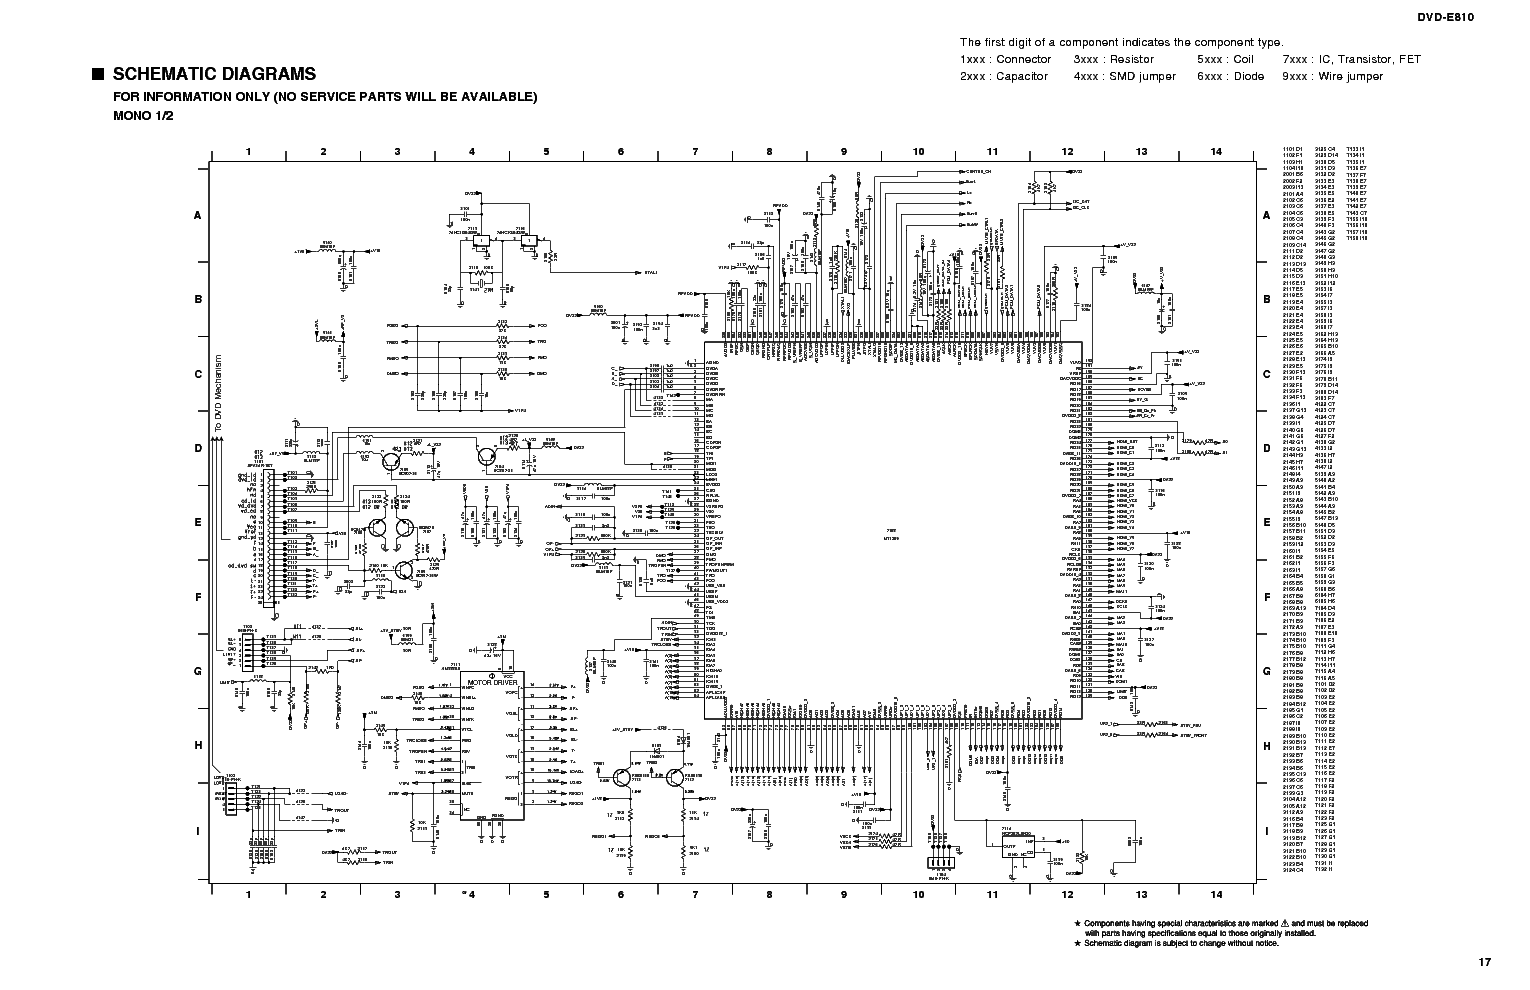 YAMAHA DVD-S840 Service Manual download, schematics